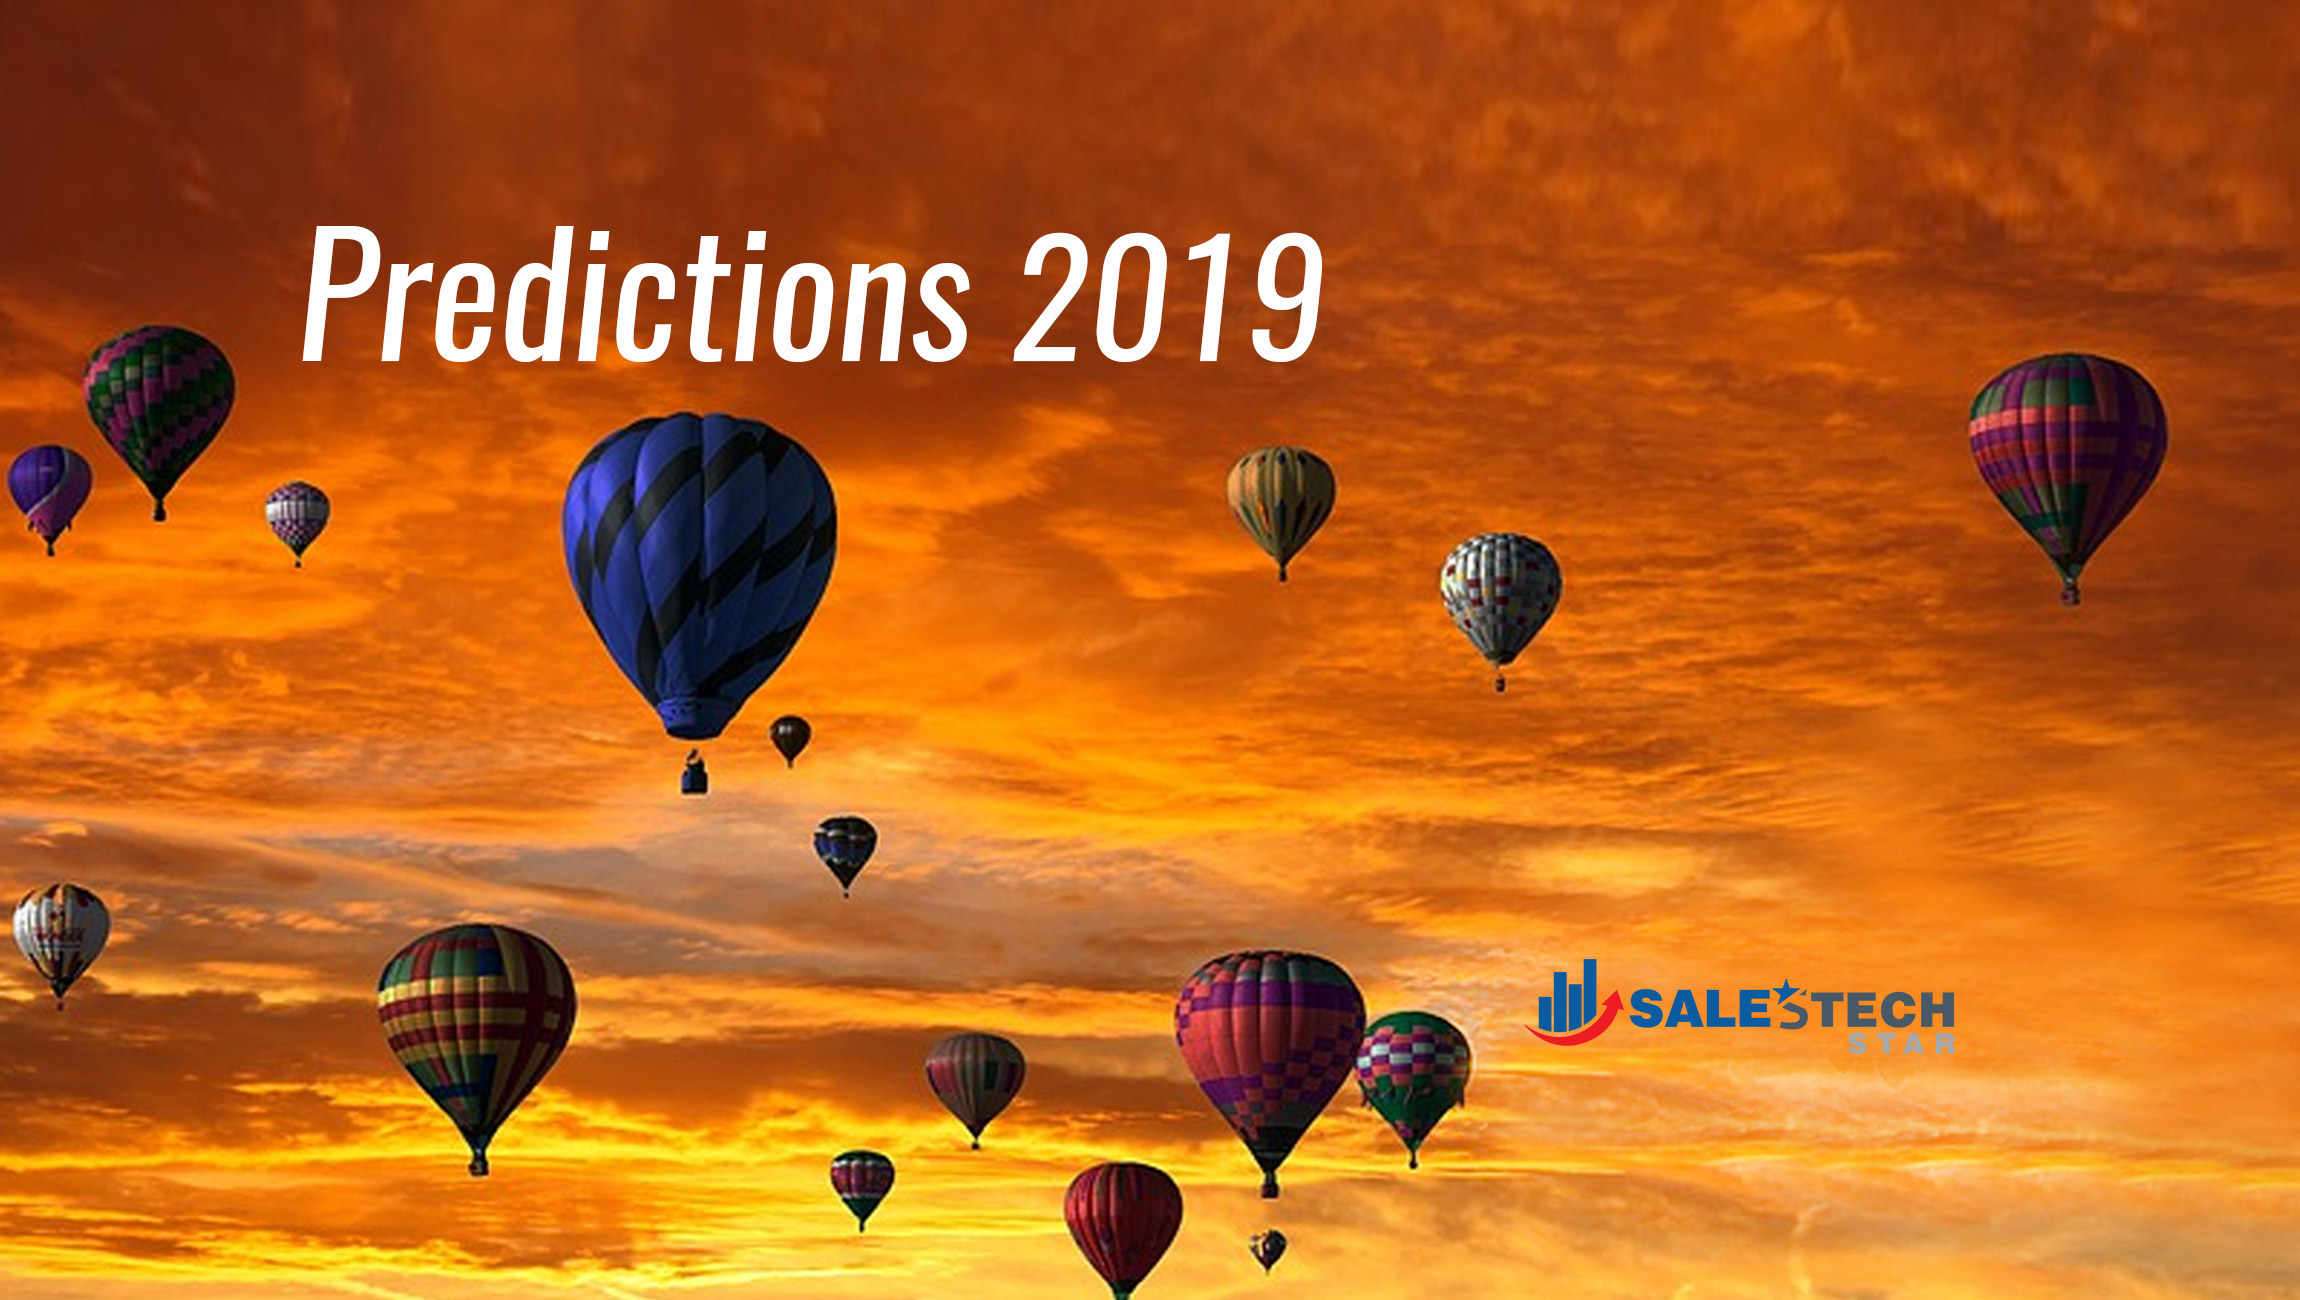 Salestech Predictions 2019: The Year of 'Practicing with Purpose'